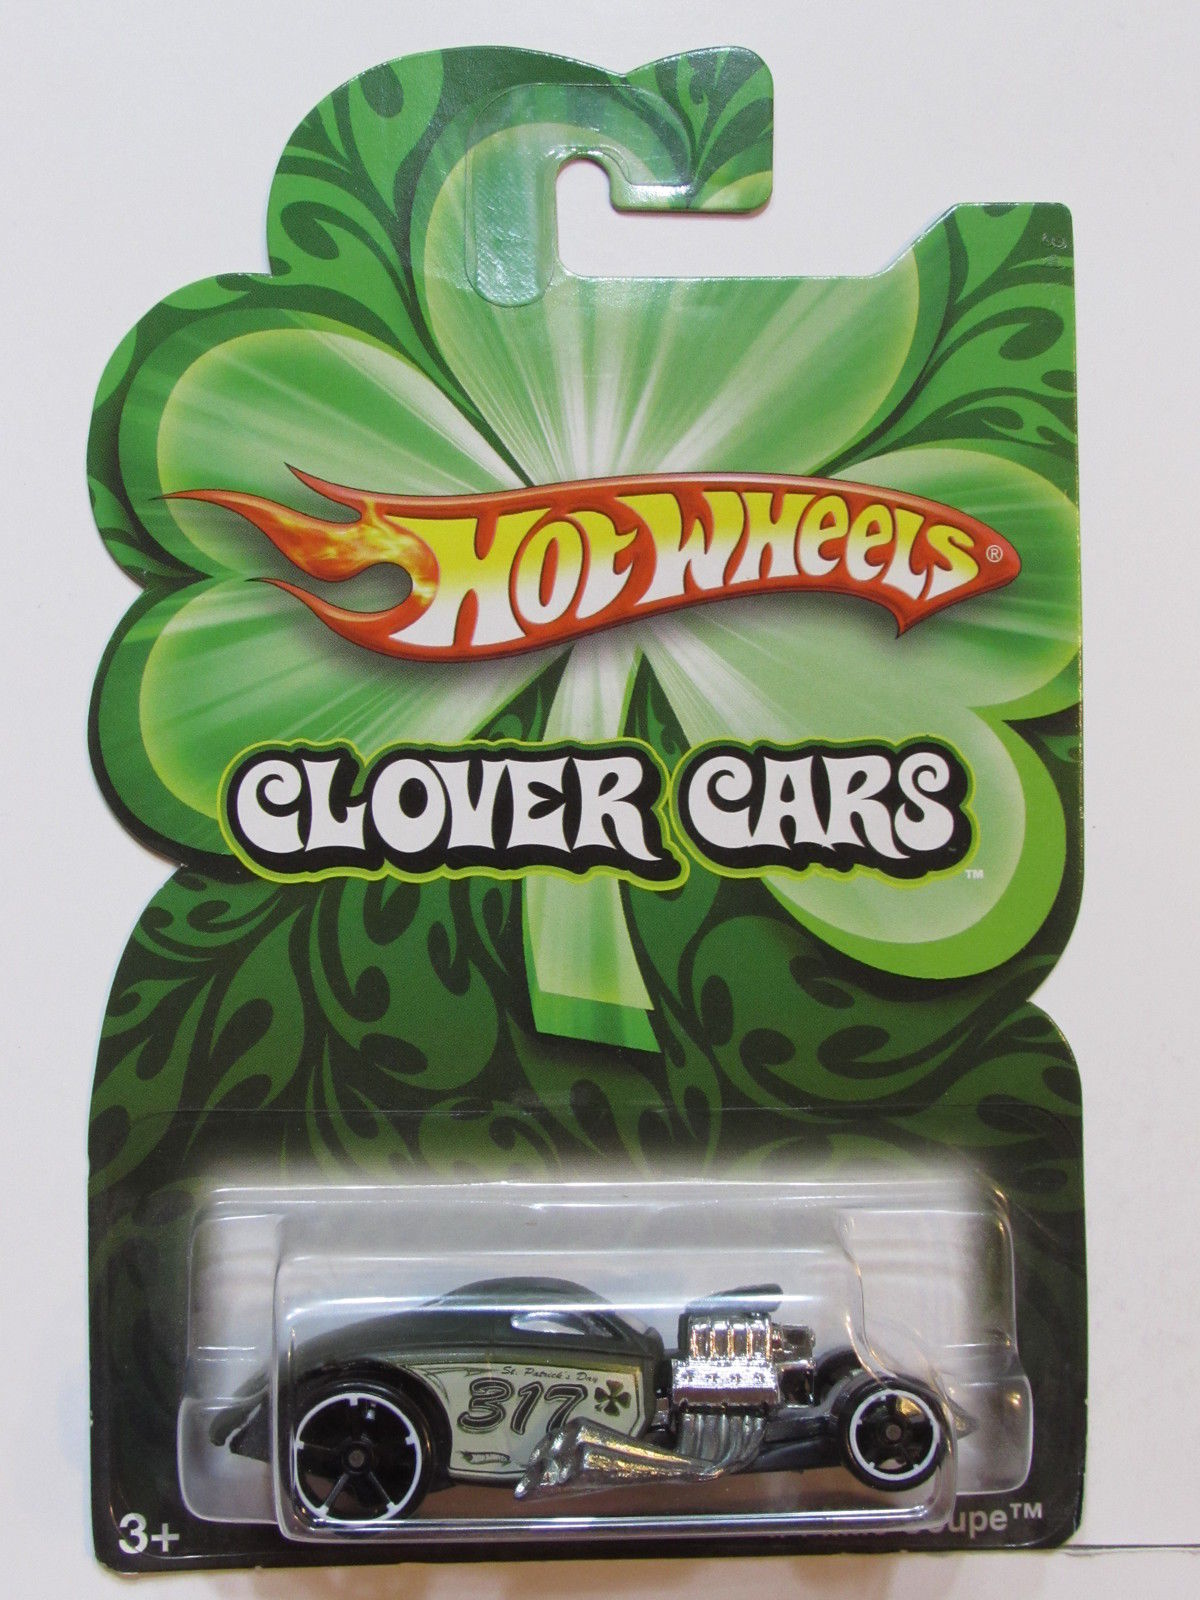 HOT WHEELS 2008 CLOVER CARS 1/4 MILE COUPE